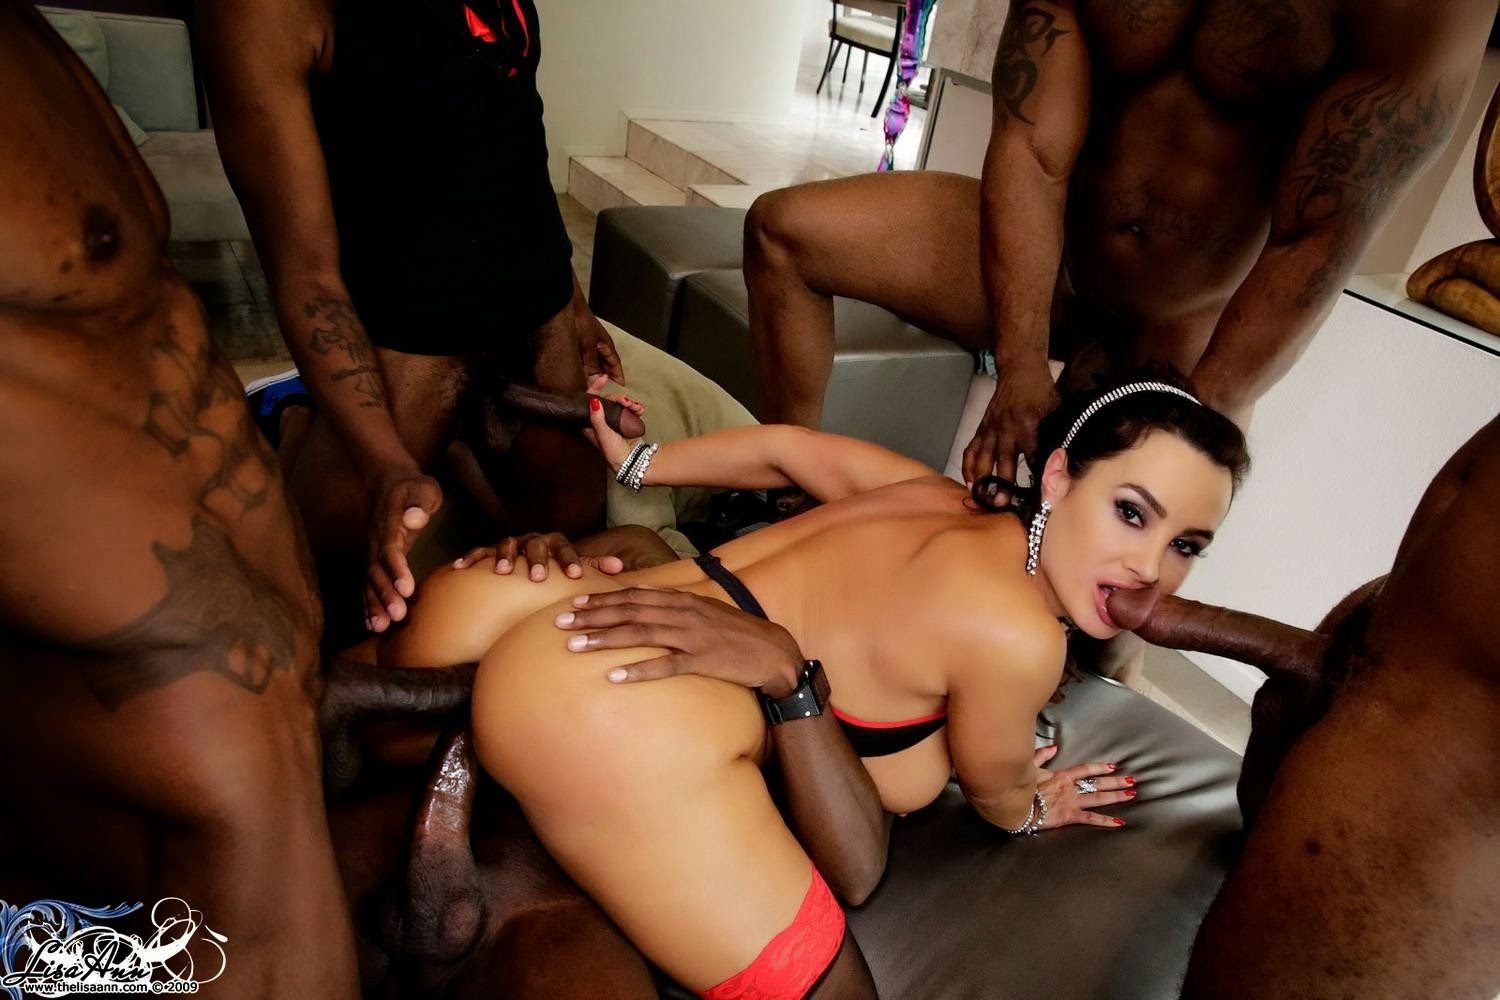 Abigaile johnson gets gangbanged by black cocks - 3 part 8